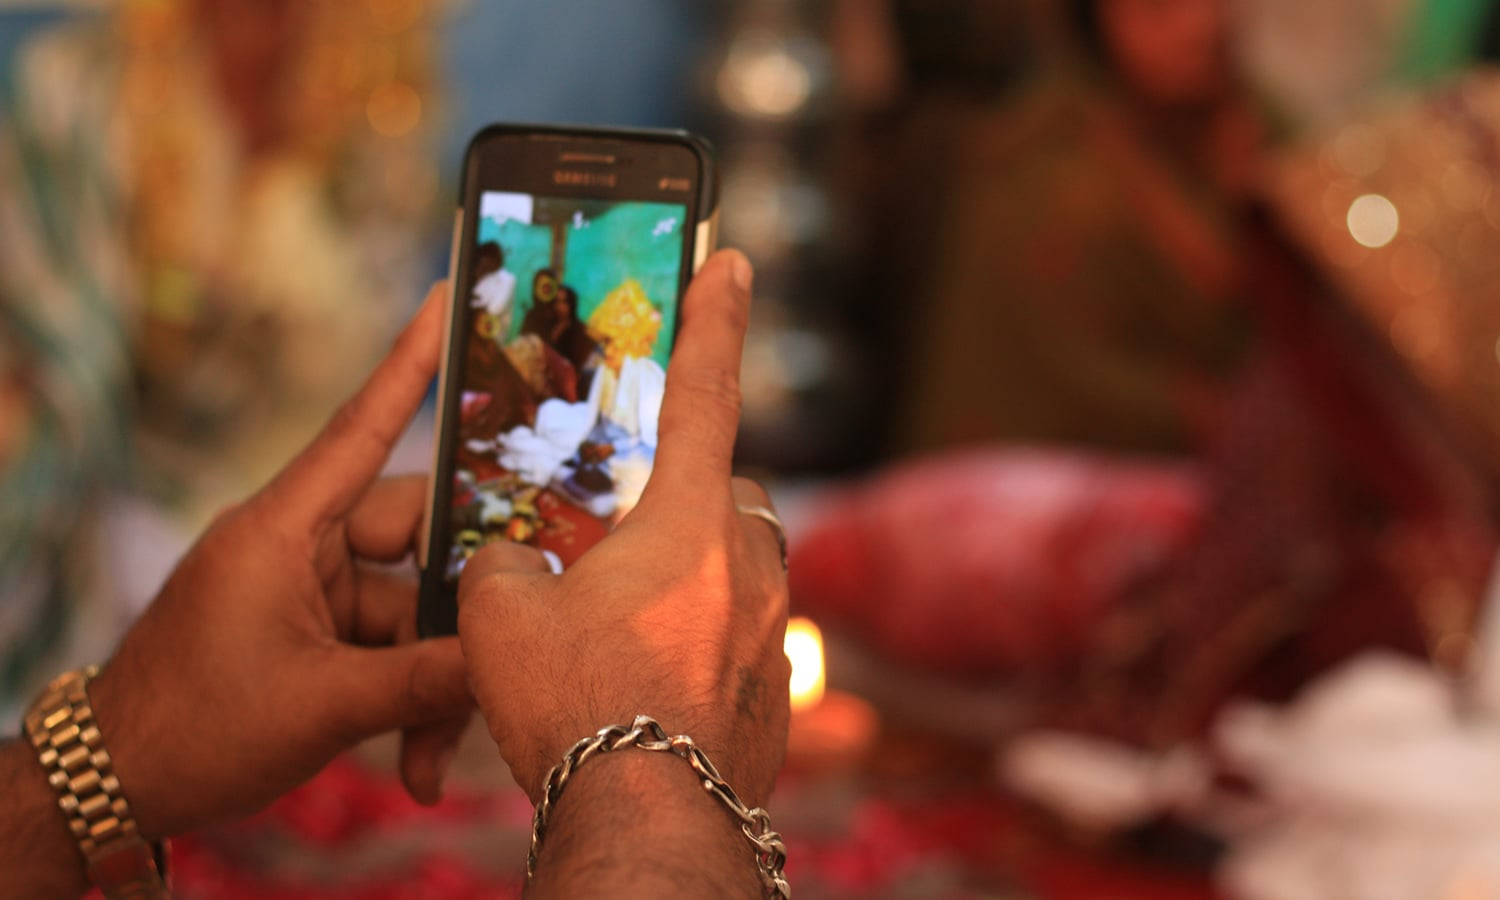 A guest snaps a photo of his friend before his marriage.